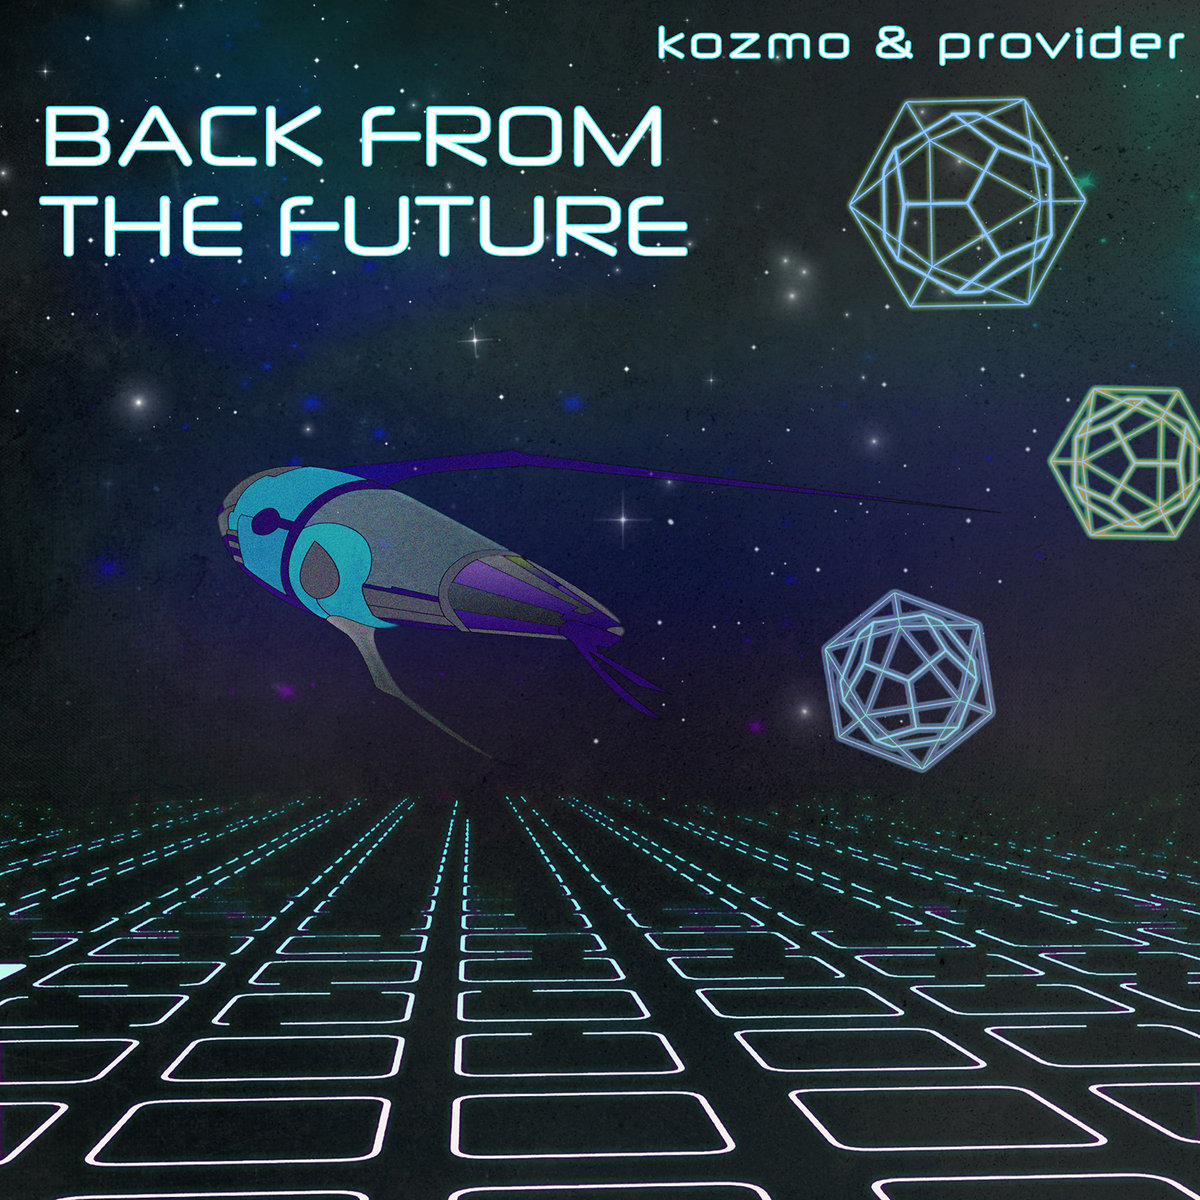 KOZMO & Provider - Cruisin' Altitude (Humpfree LowGart Remix) @ 'Back From the Future' album (electronic, dubstep)